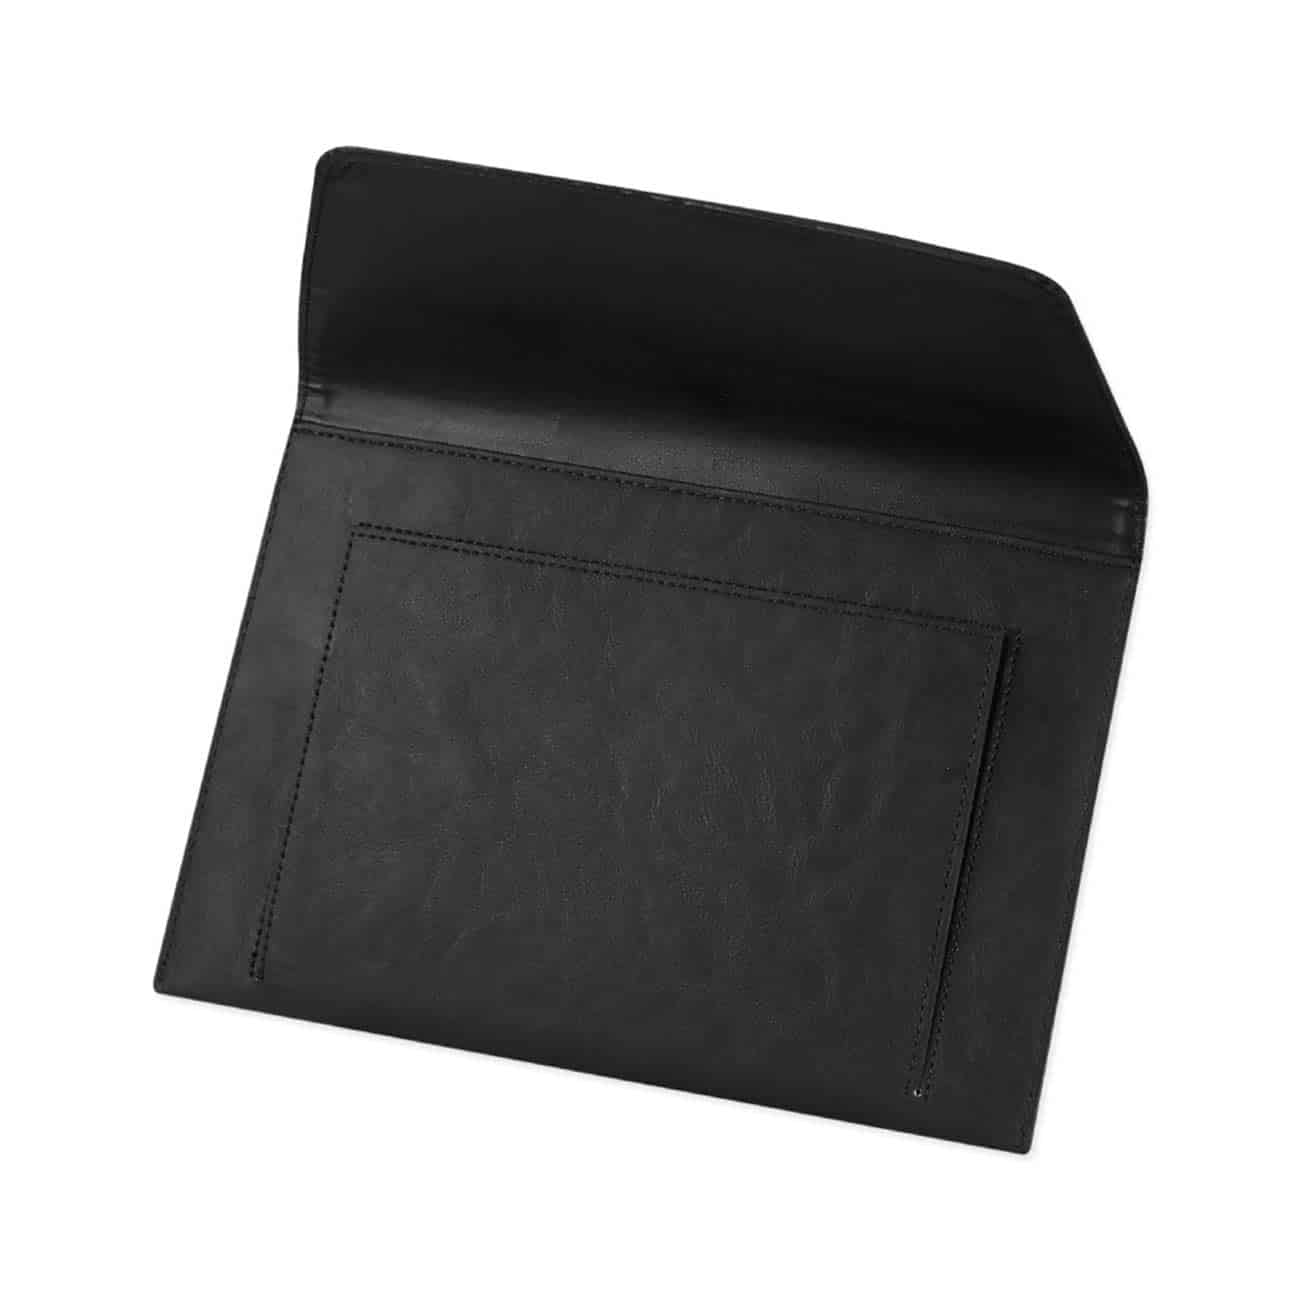 PREMIUM LEATHER CASE POUCH FOR 10.1INCHES IPADS AND TABLETSBLACK